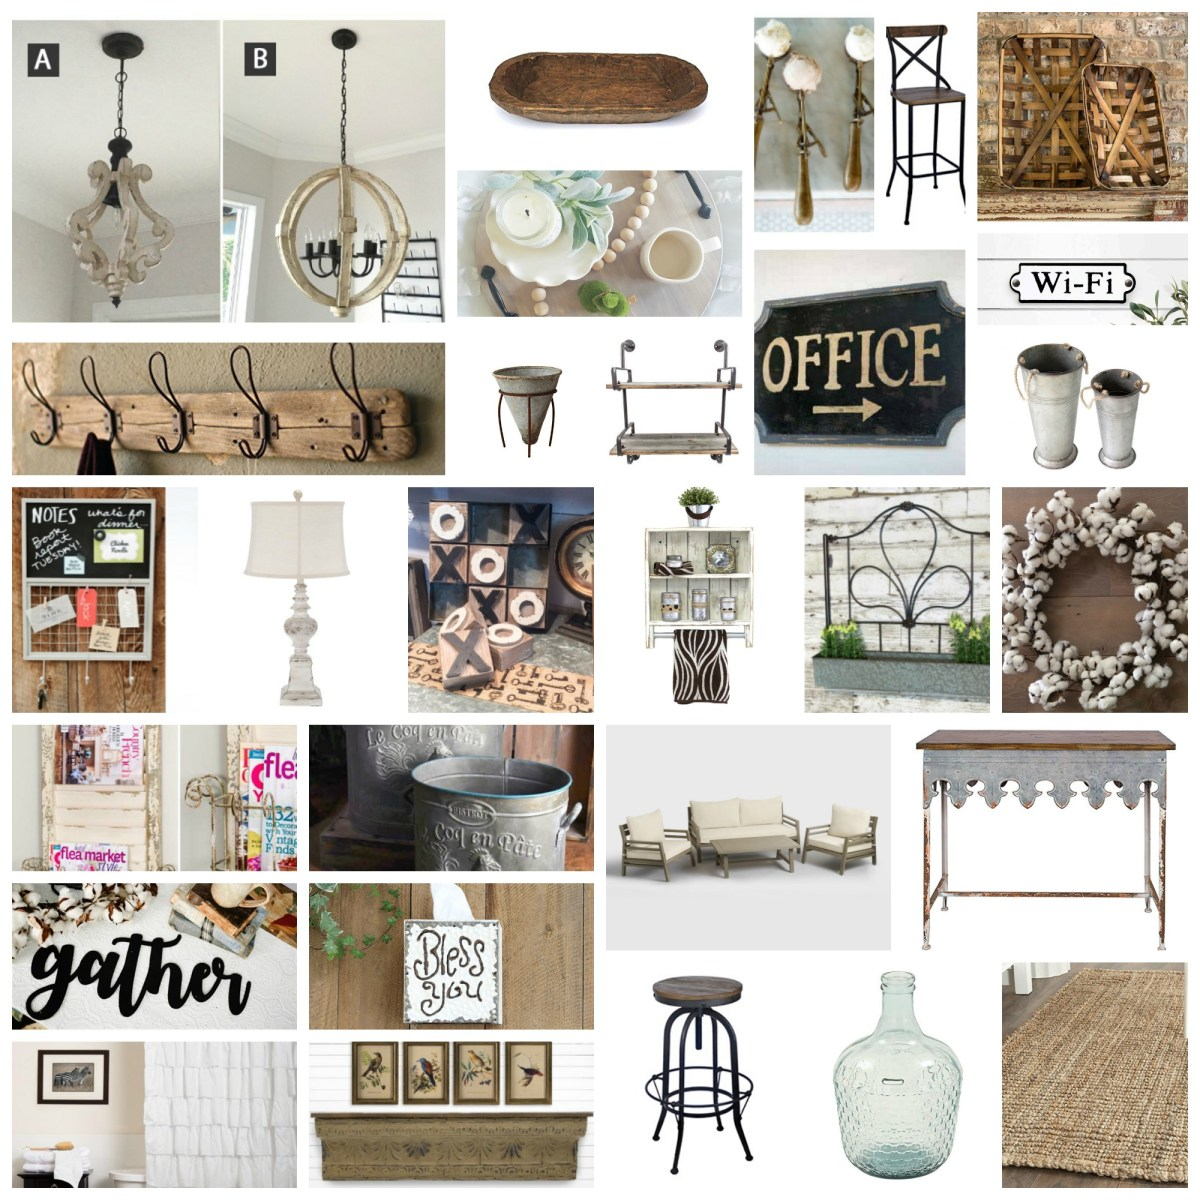 Home Decor Daily Deals: Wednesday, March 29, 2017